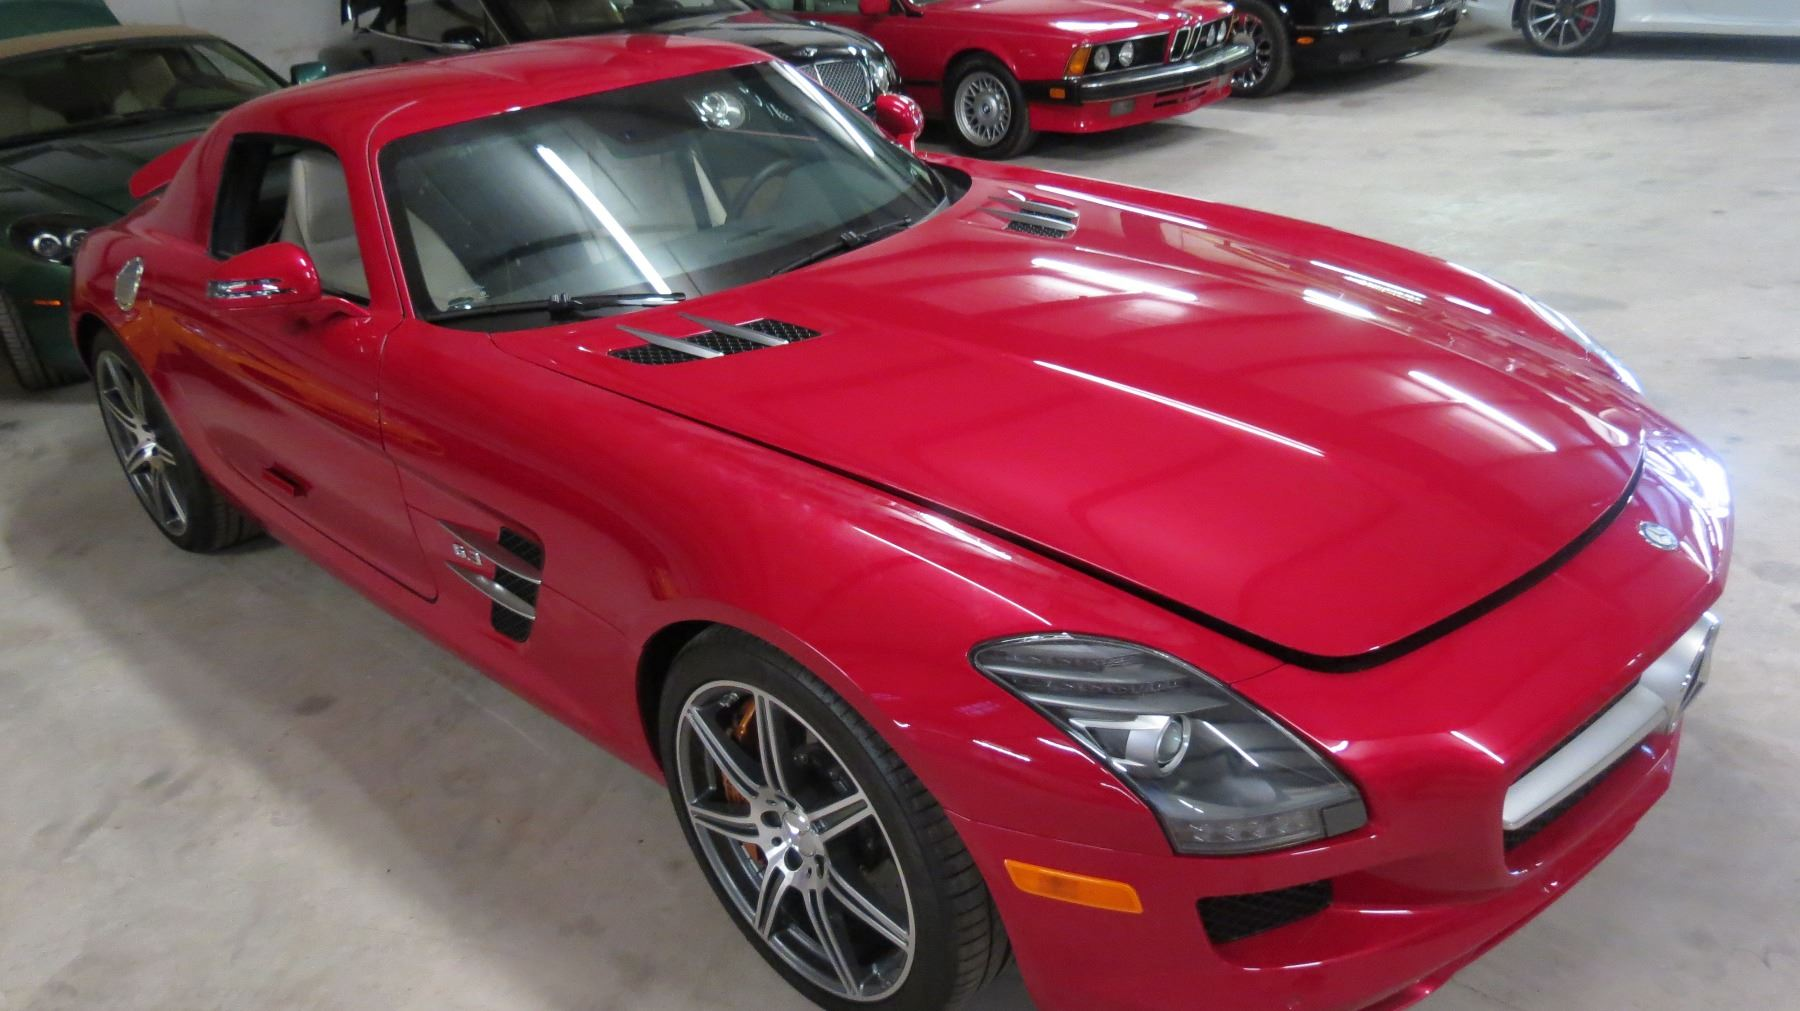 2011 mercedes benz sls amg coupe with butterfly doors 6 for Mercedes benz amg 6 3 liter v8 price